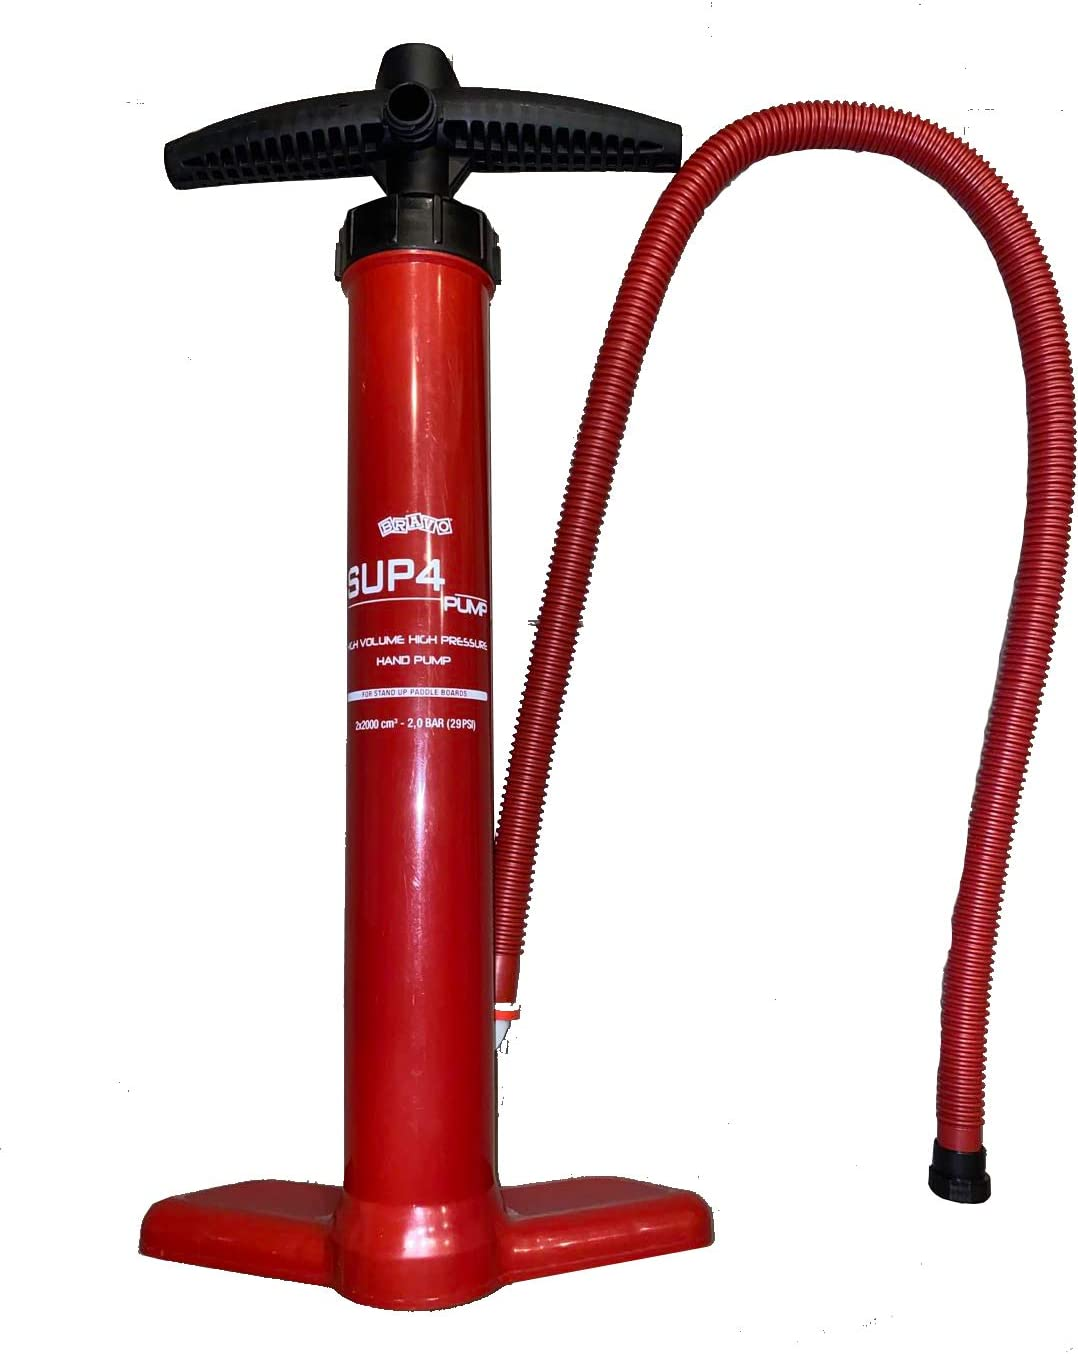 Crew Axel SUP4 Bravo Pump for Paddle Board